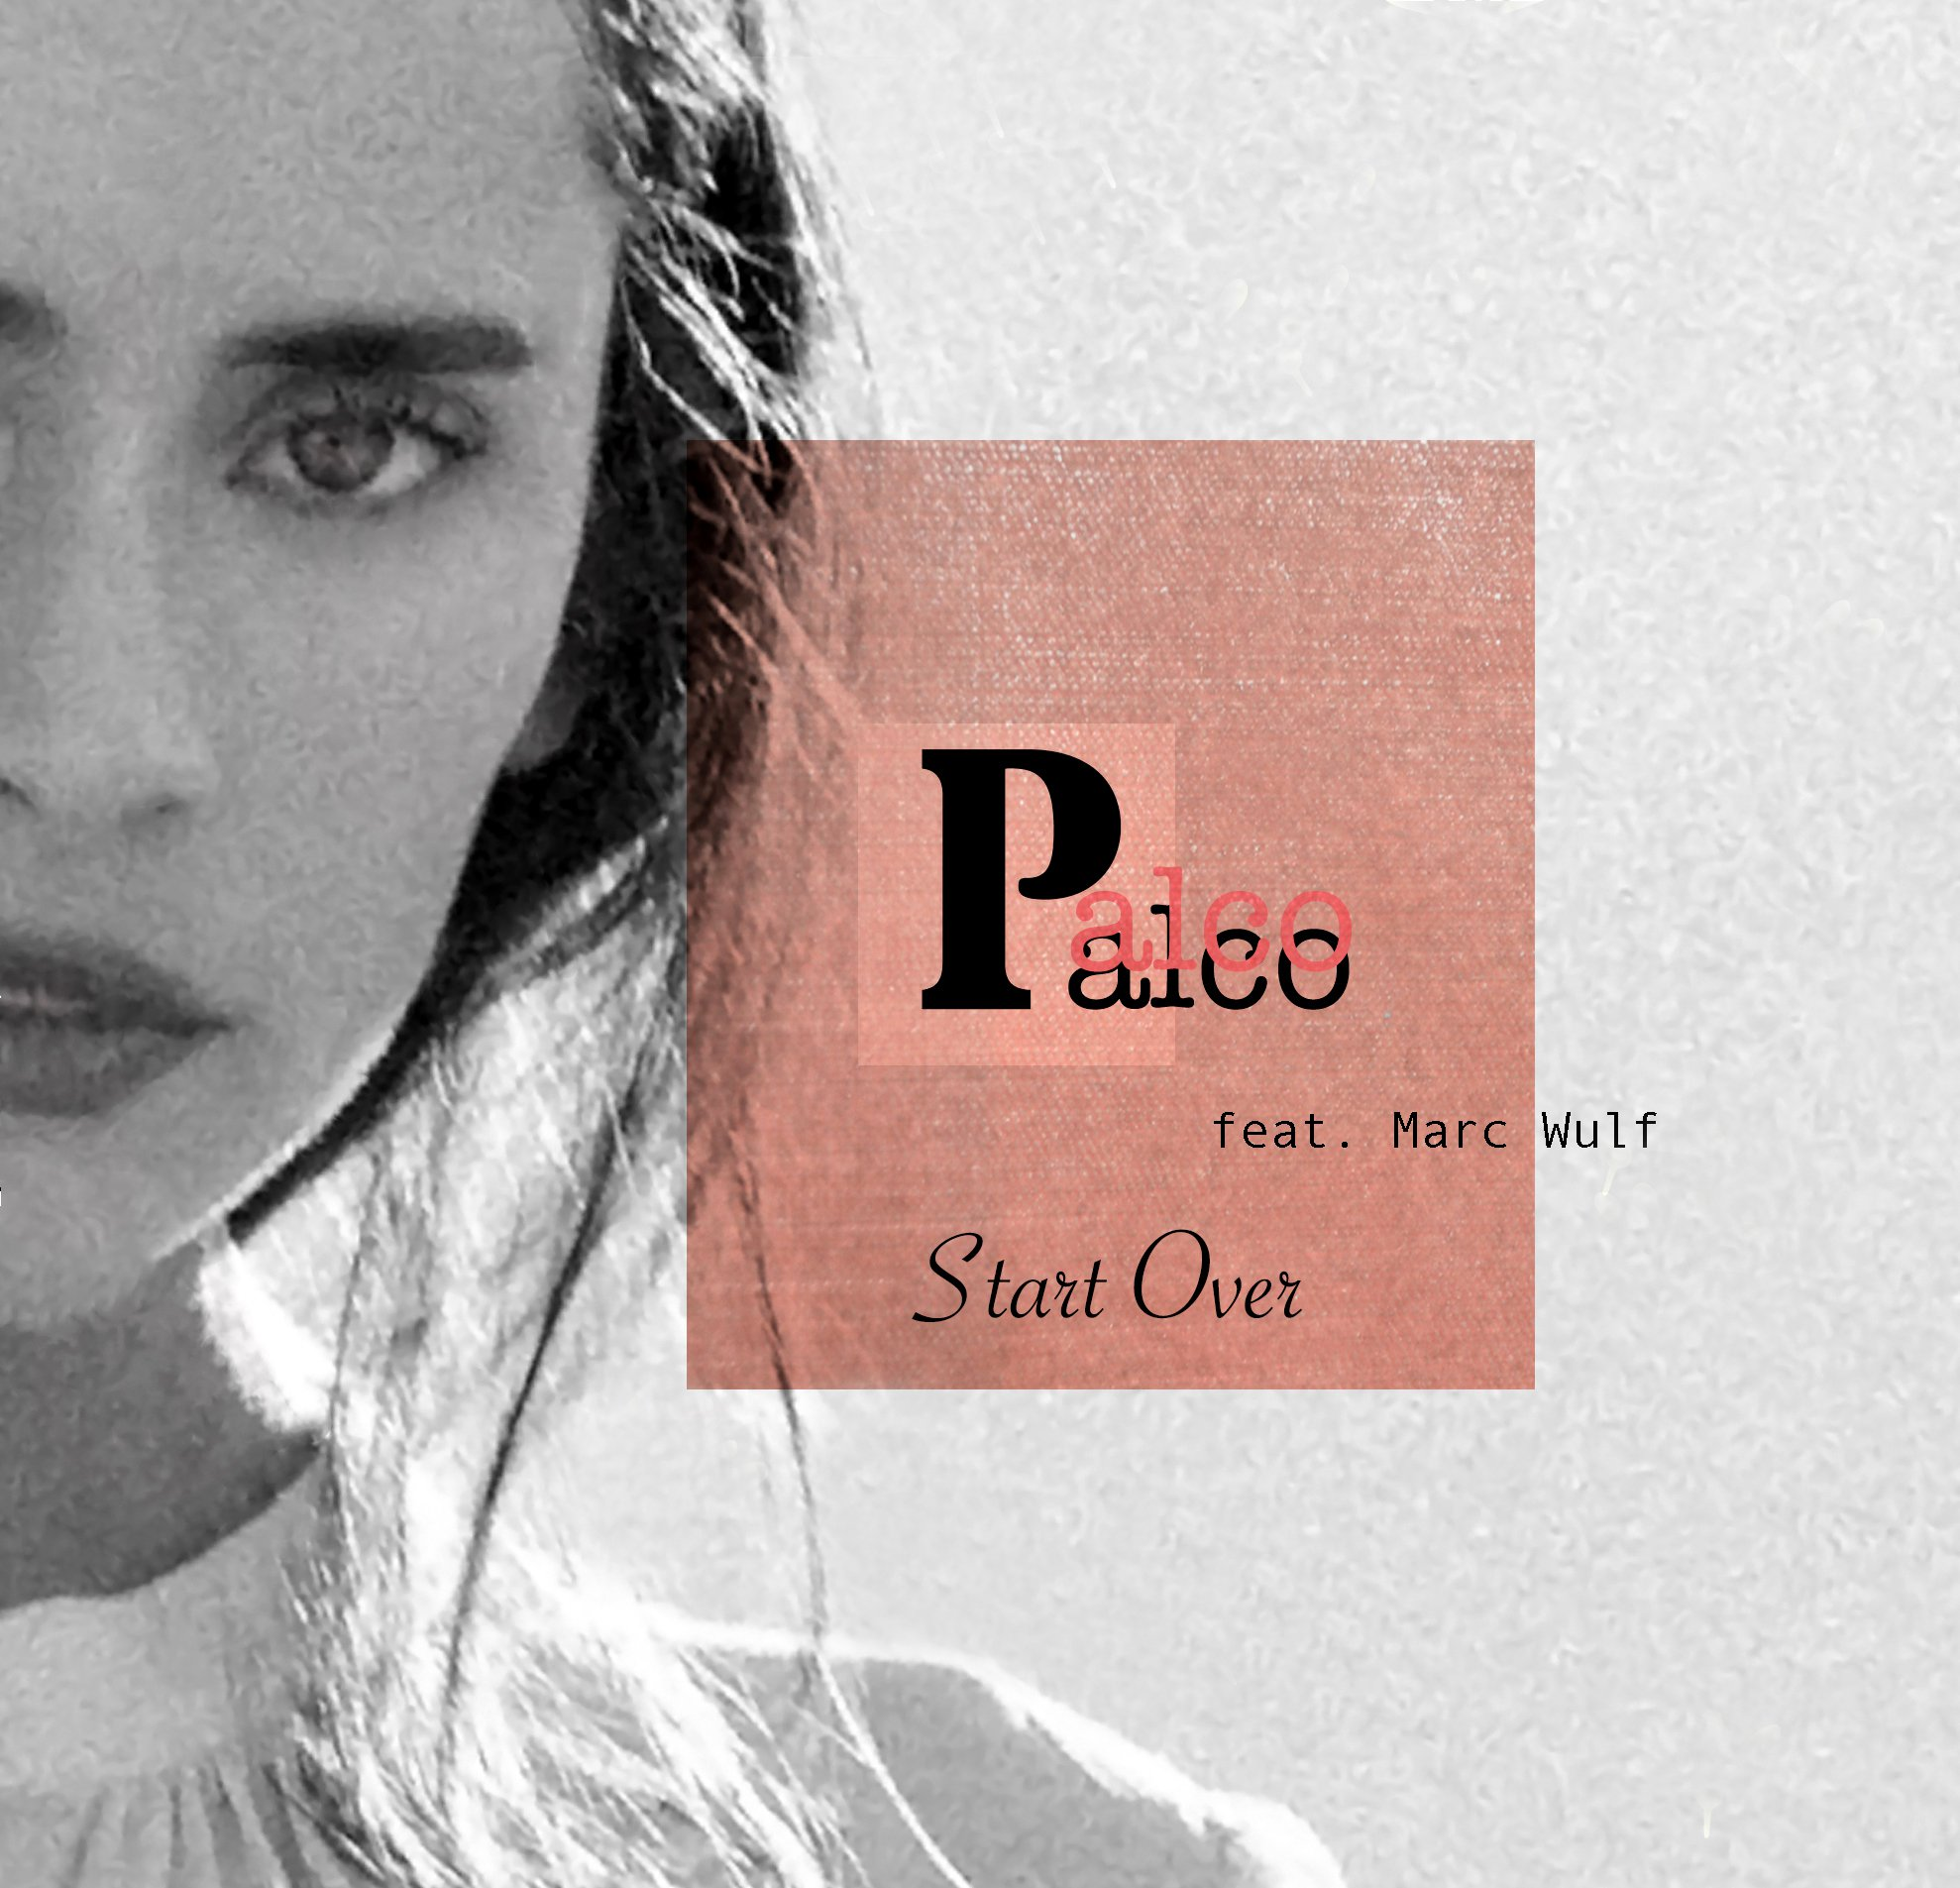 listen - start over - by - palco - ft - marc wulf - indie music - new music - indie pop - music blog - indie blog - wolf in a suit - wolfinasuit - wolf in a suit blog - wolf in a suit music blog